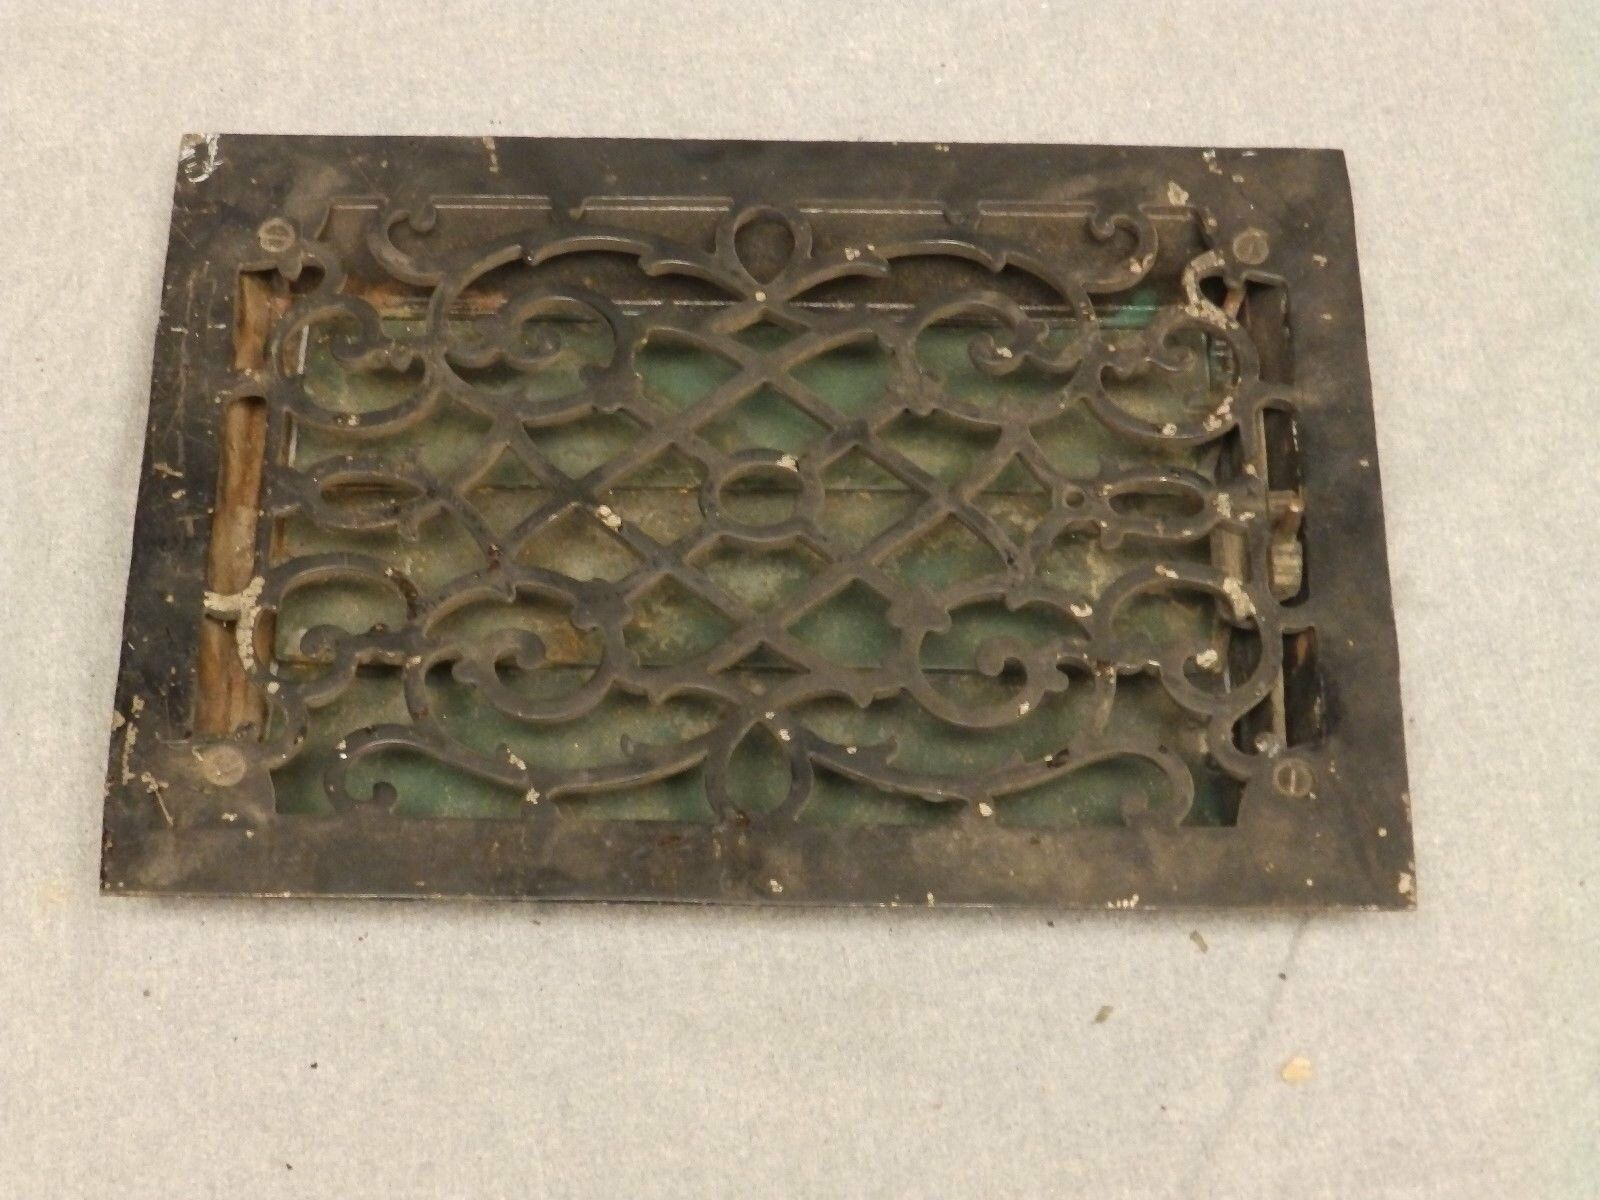 Antique Cast Iron Victorian Heat Grate Register Vent Old Vtg Hardware 616-16